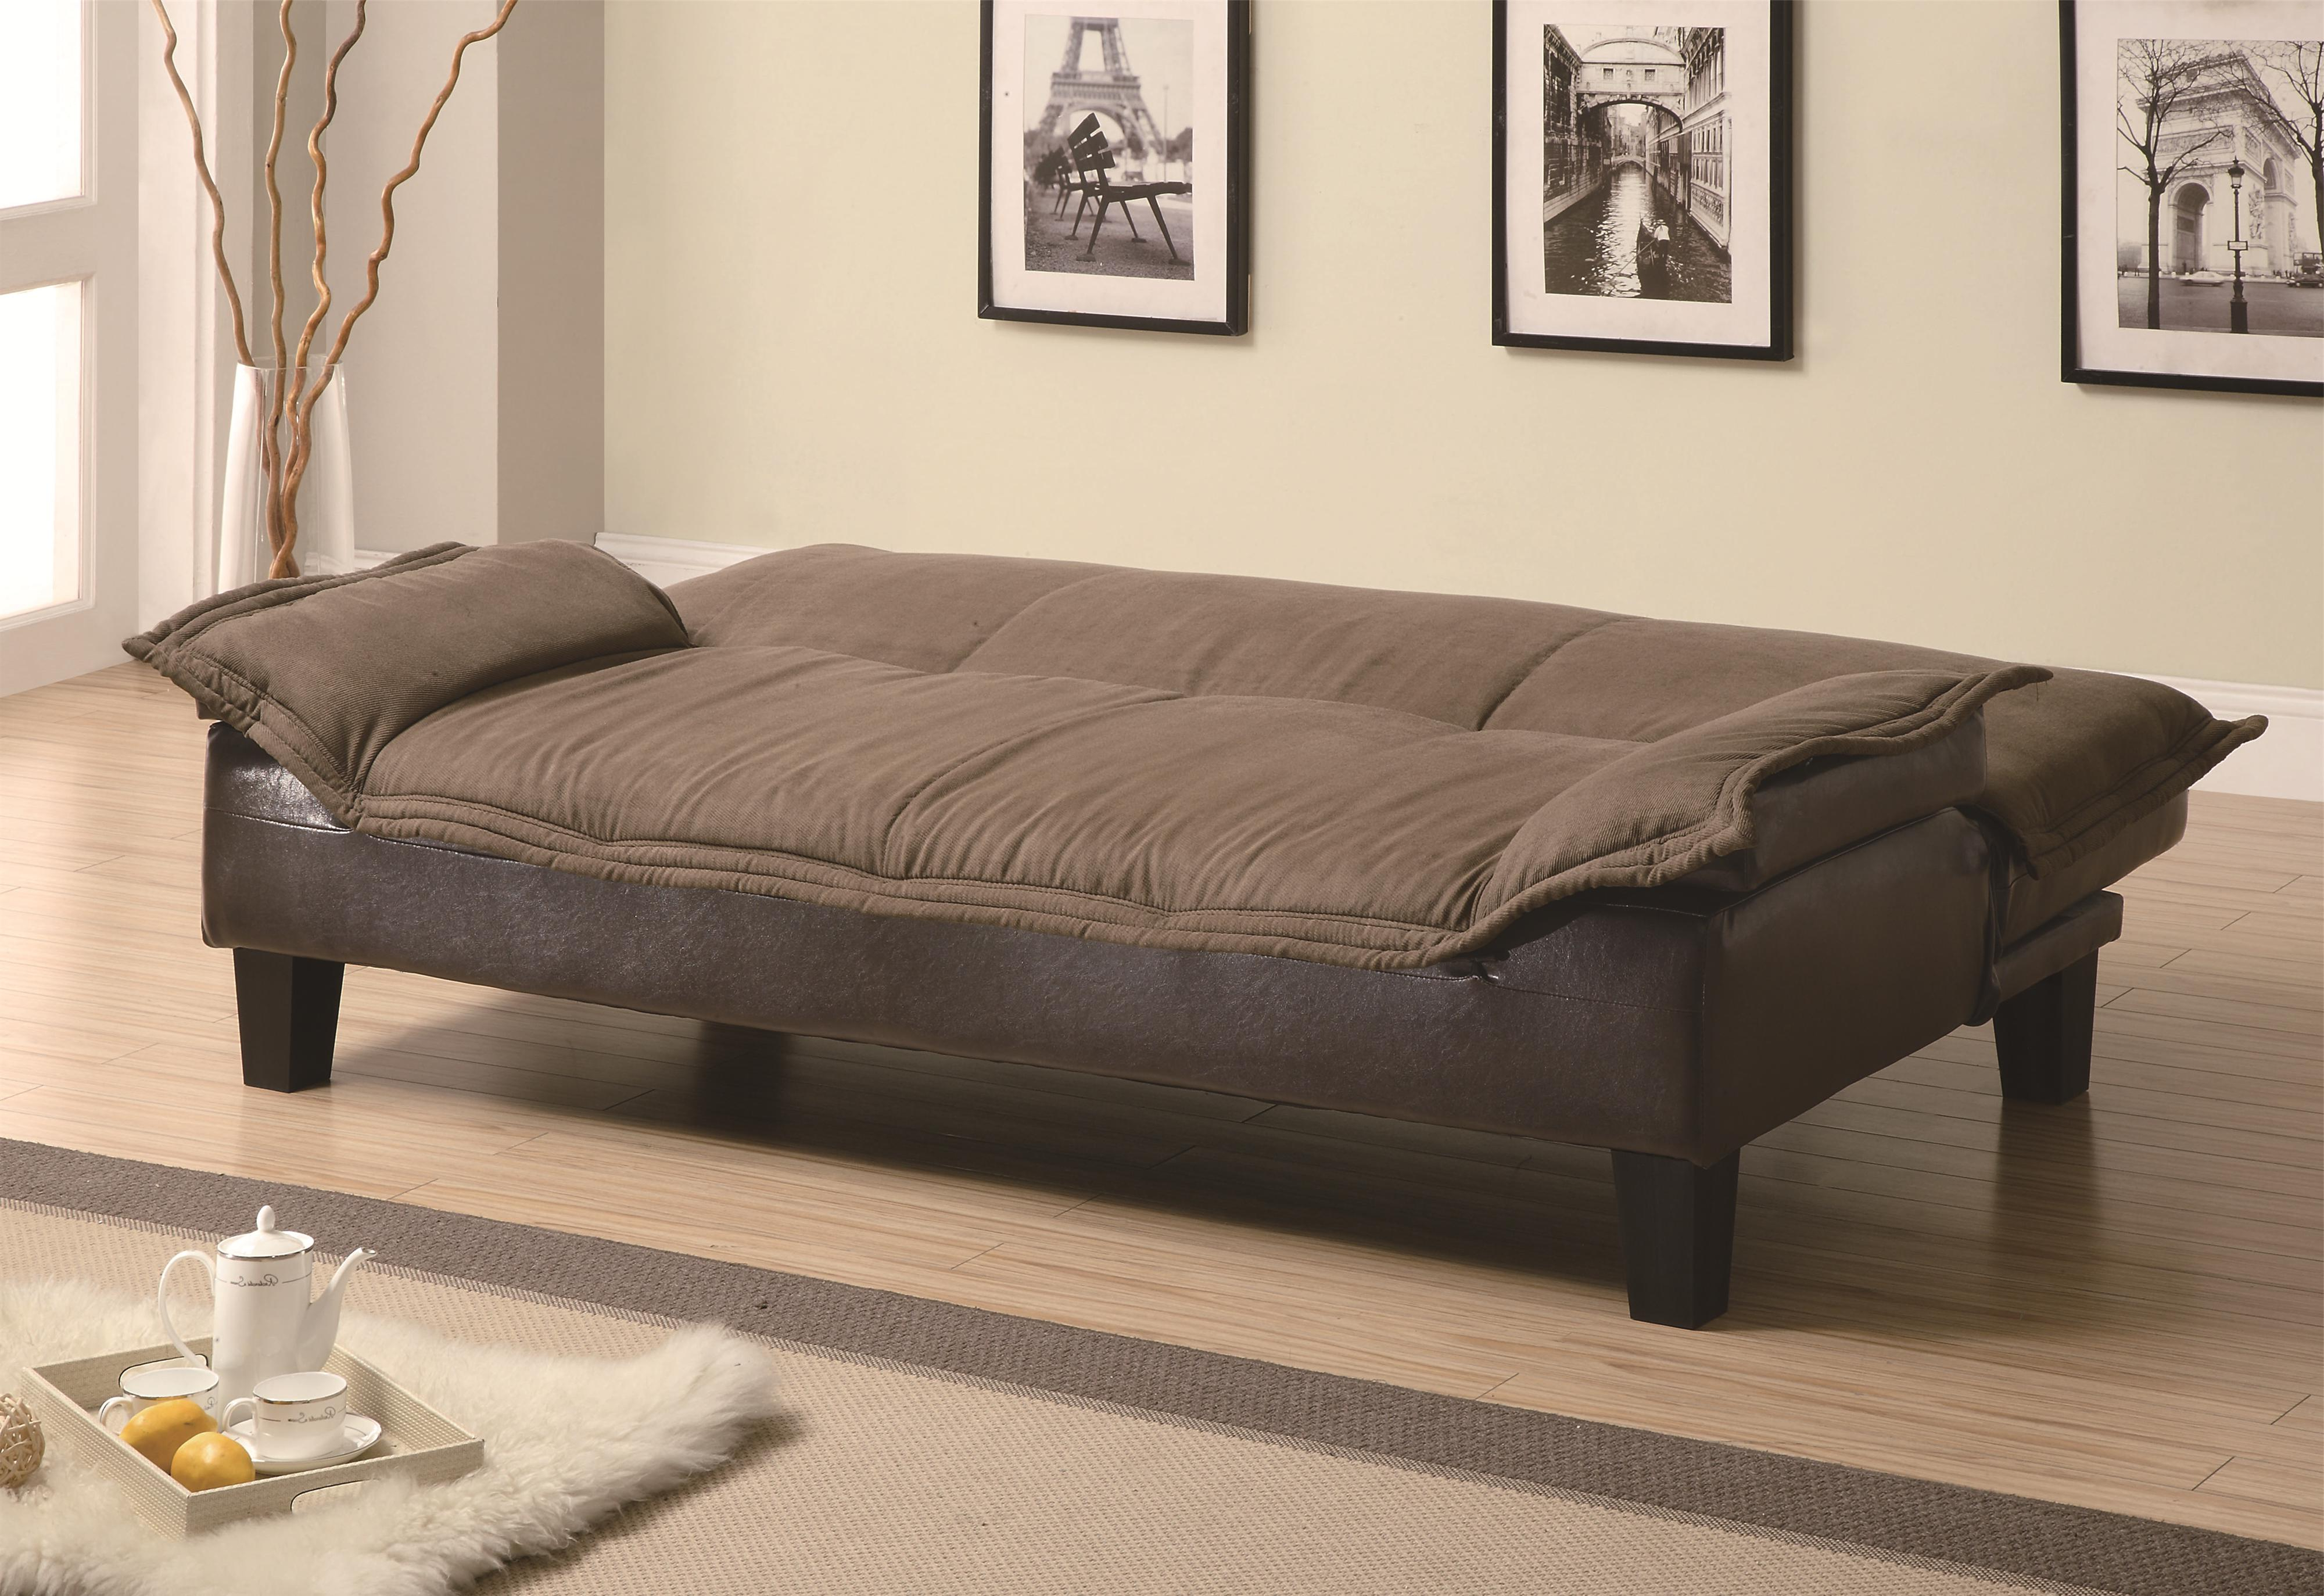 Coaster Sofa Beds And Futons Ratchet Back Sofa Bed With Dark Brown With Regard To Fashionable Sofa Beds Chairs (View 3 of 20)